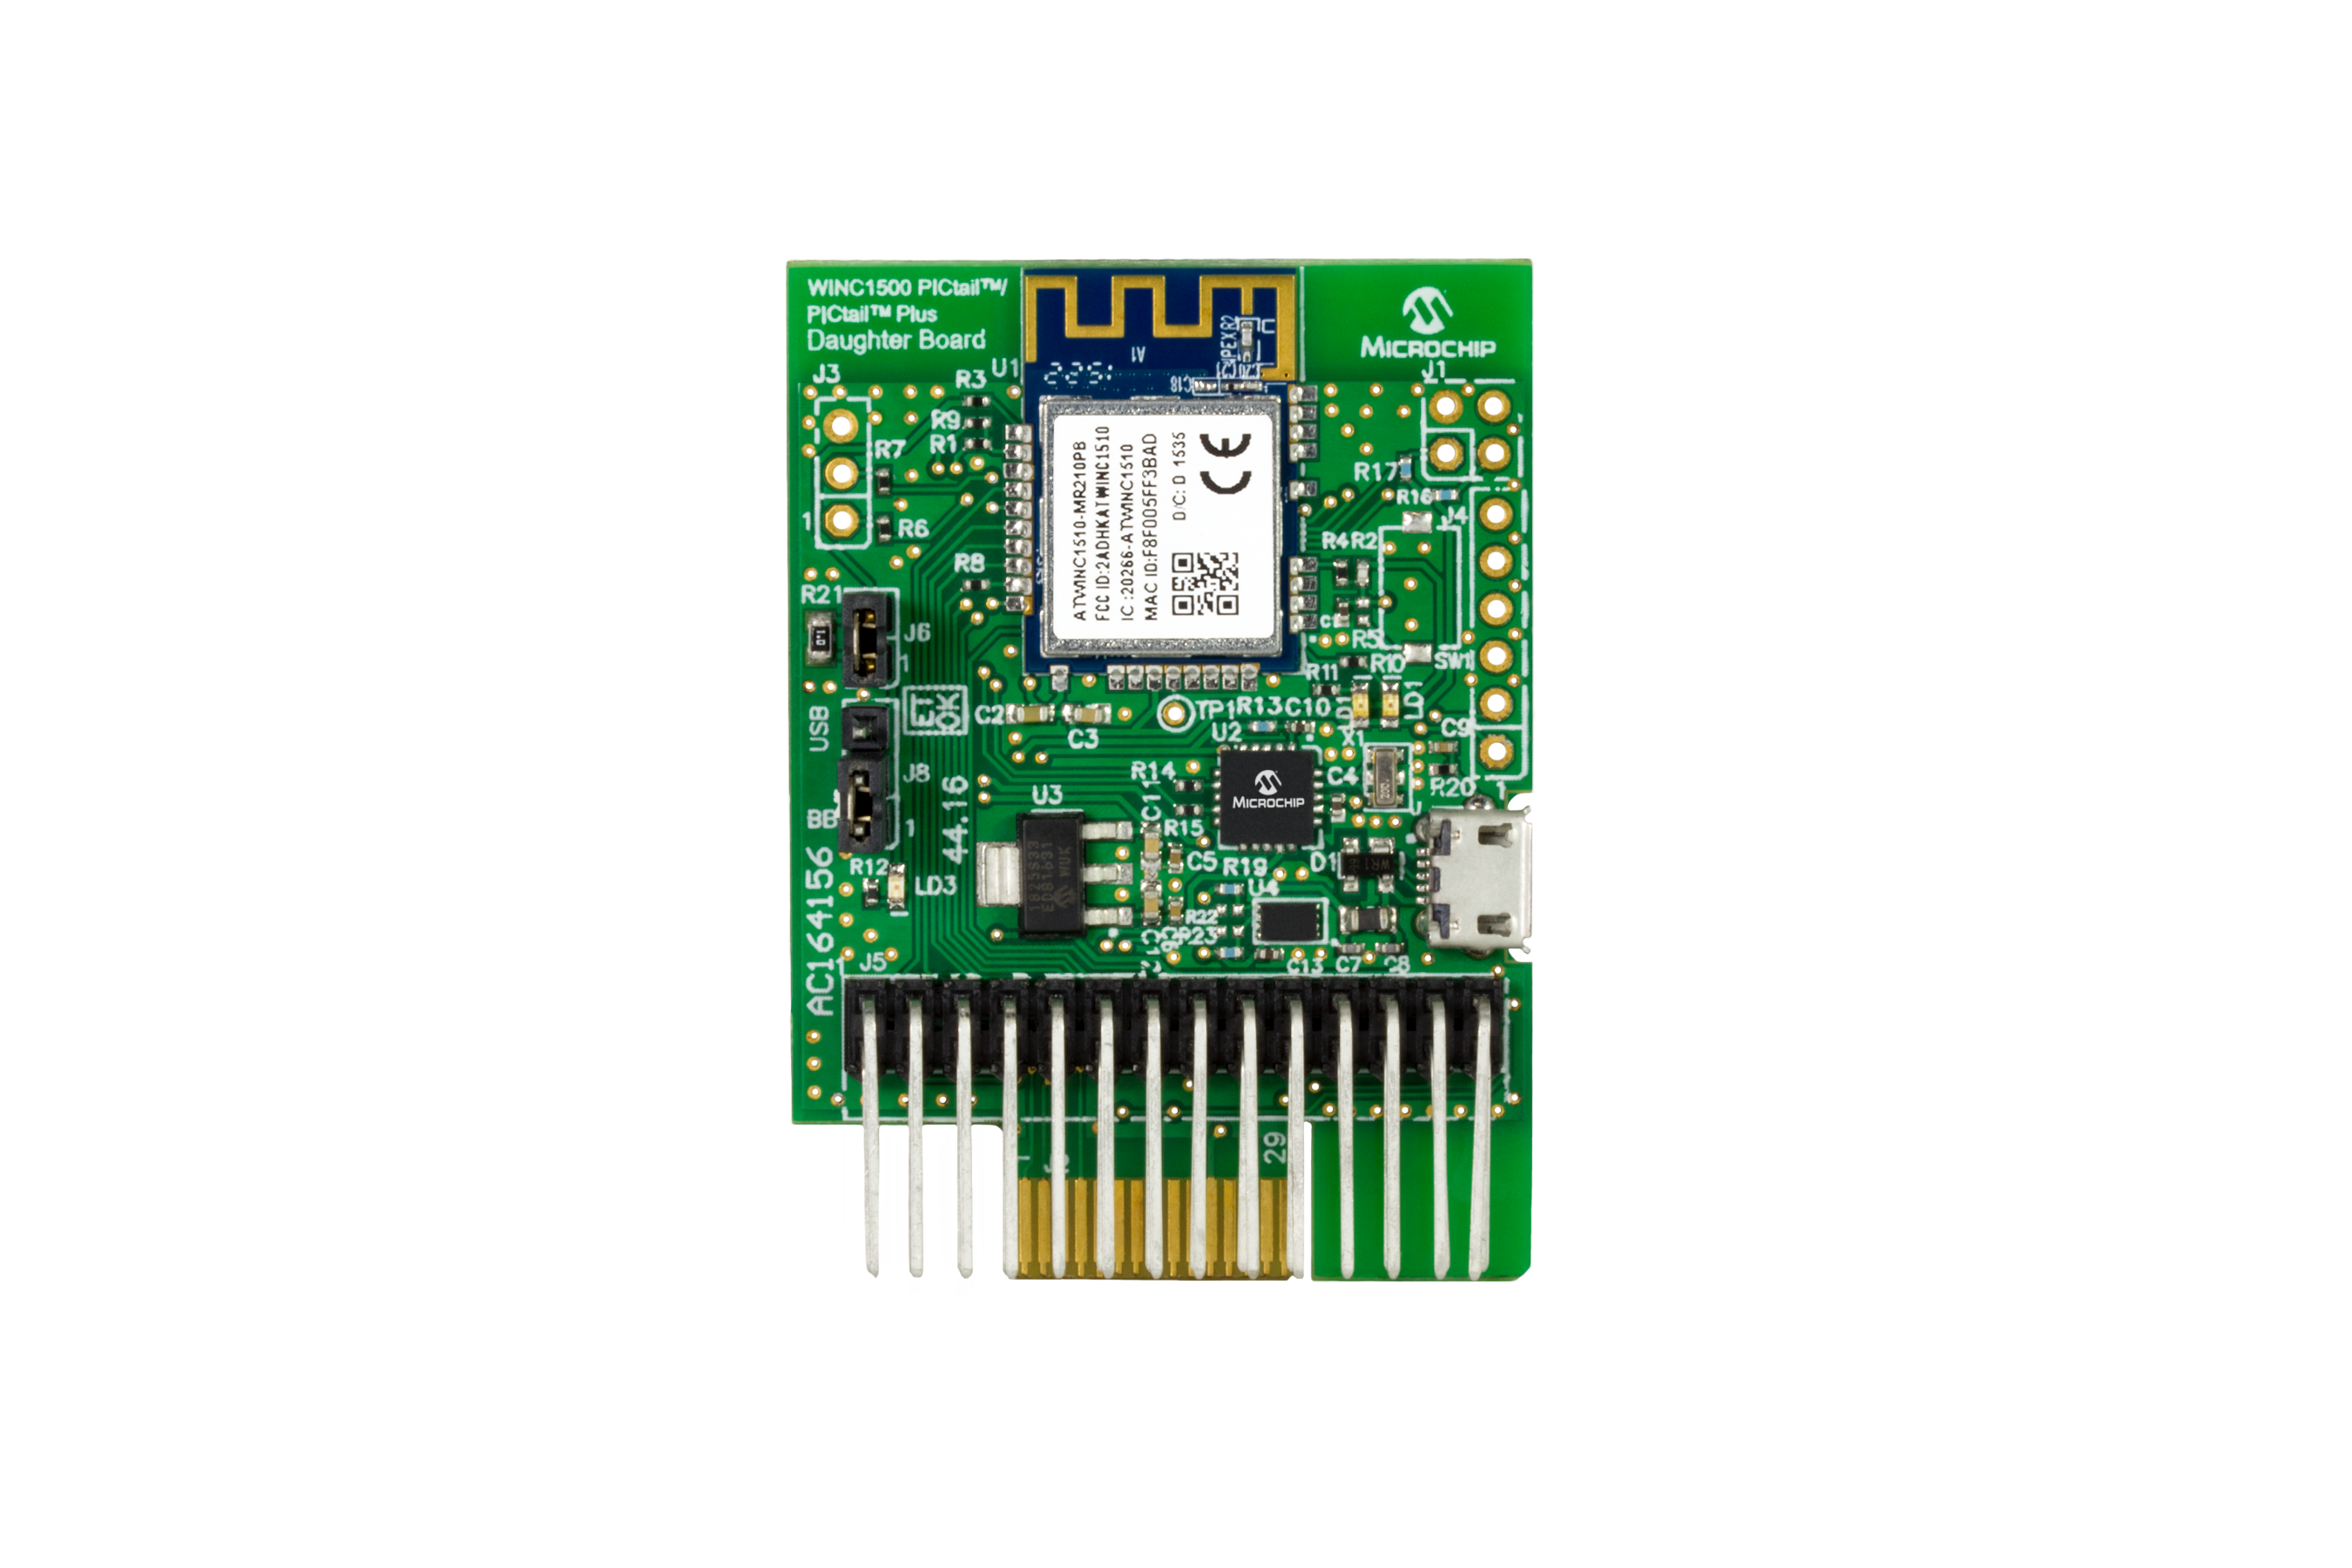 development toolsthe winc1500 pictail pictail plus daughter board is a demonstration and development board for the winc1510 mr210pb certified wi fi module